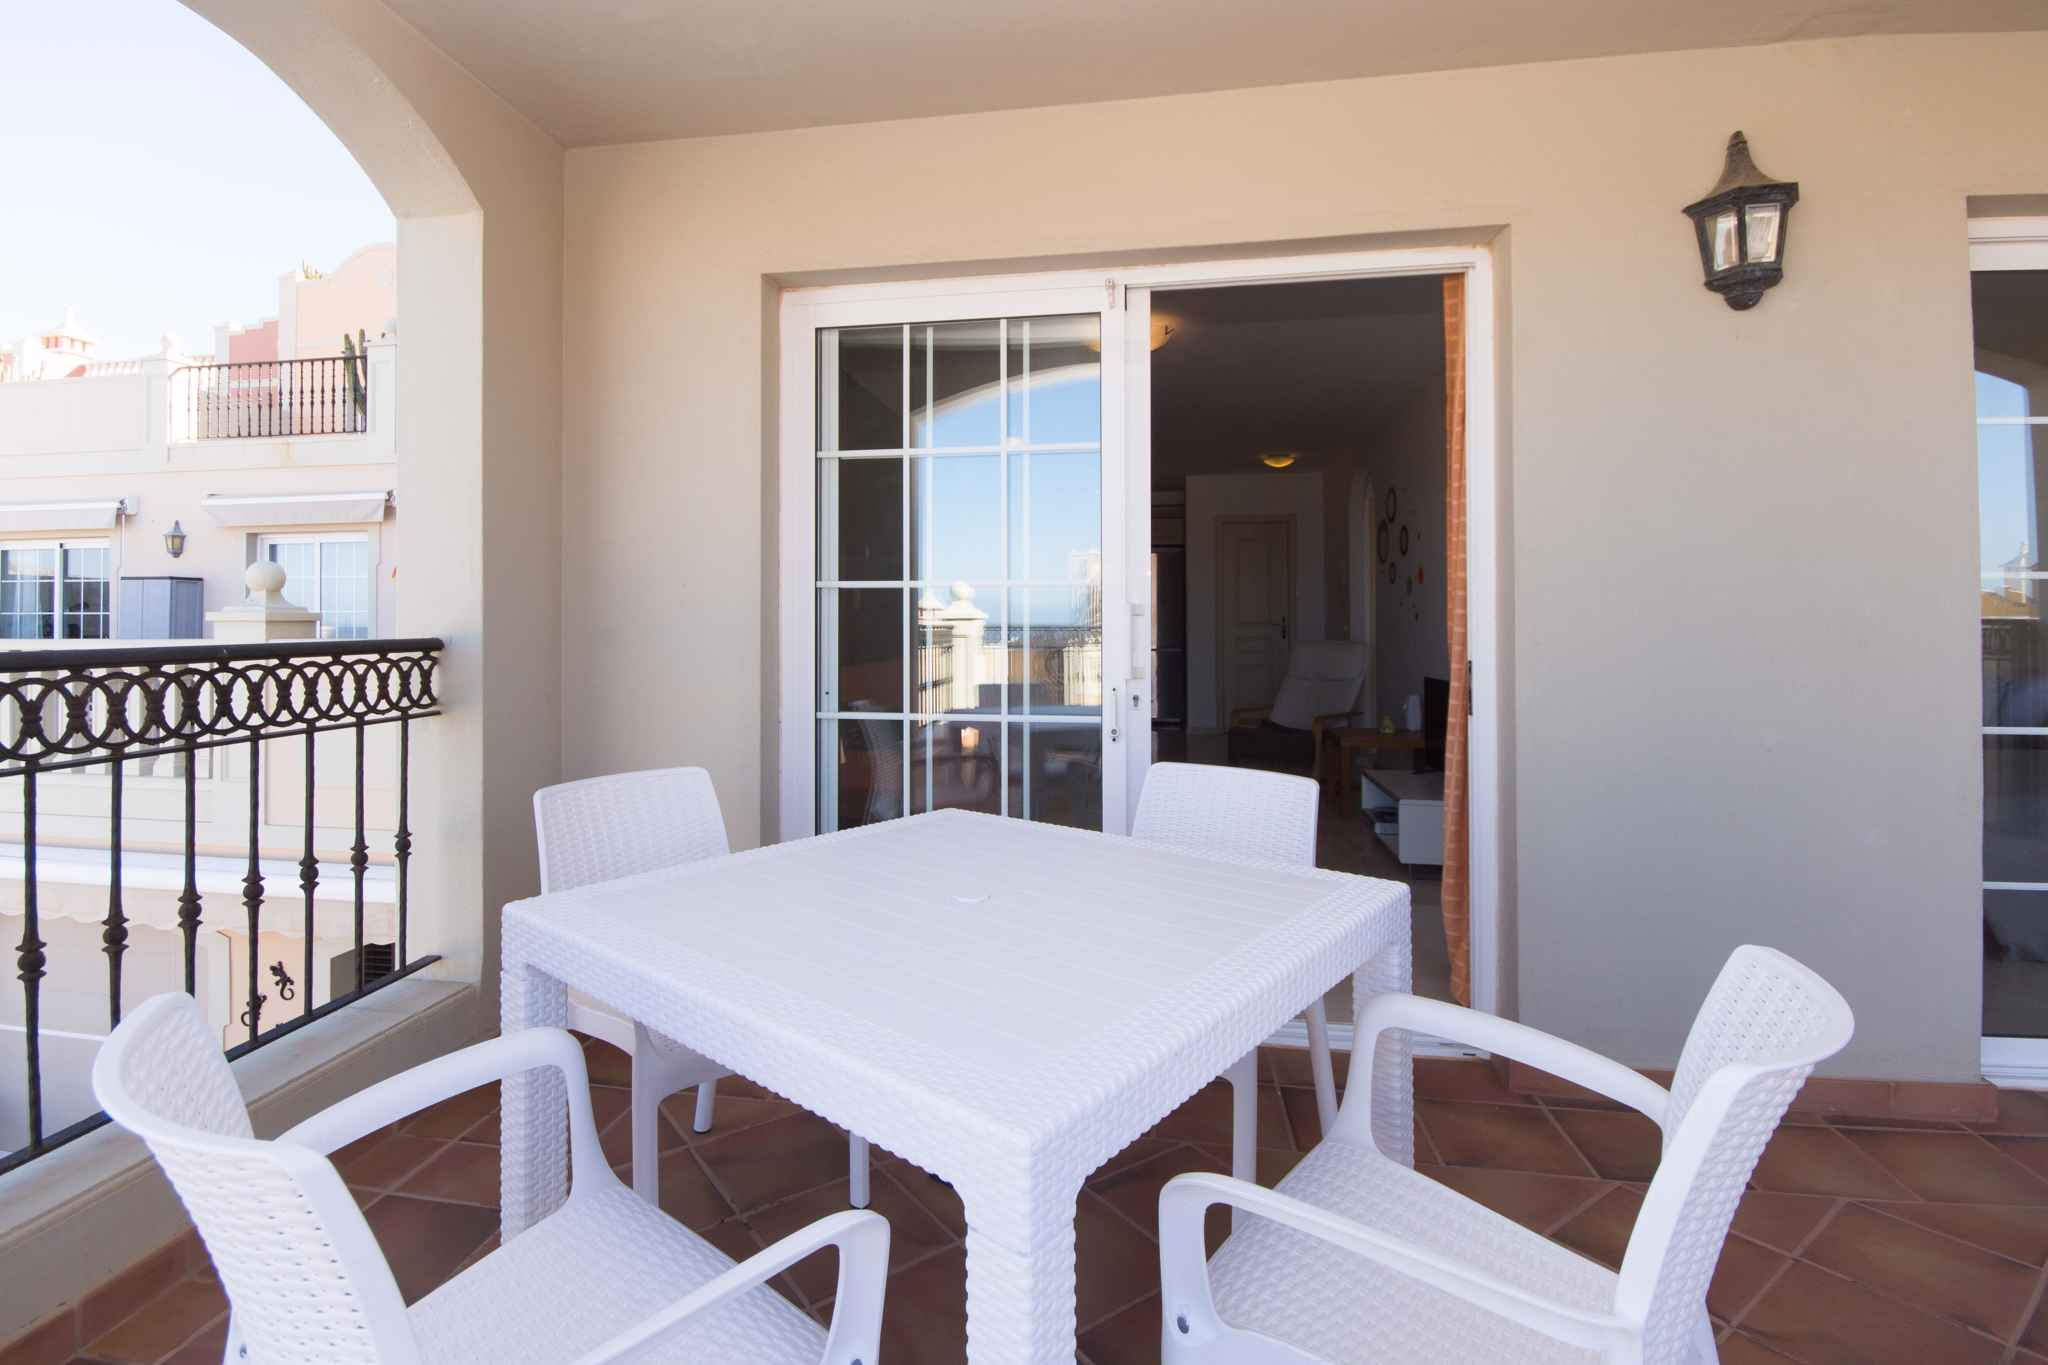 Holiday apartment mit Pool in Ferienanlage (2377552), Palm-Mar, Tenerife, Canary Islands, Spain, picture 3